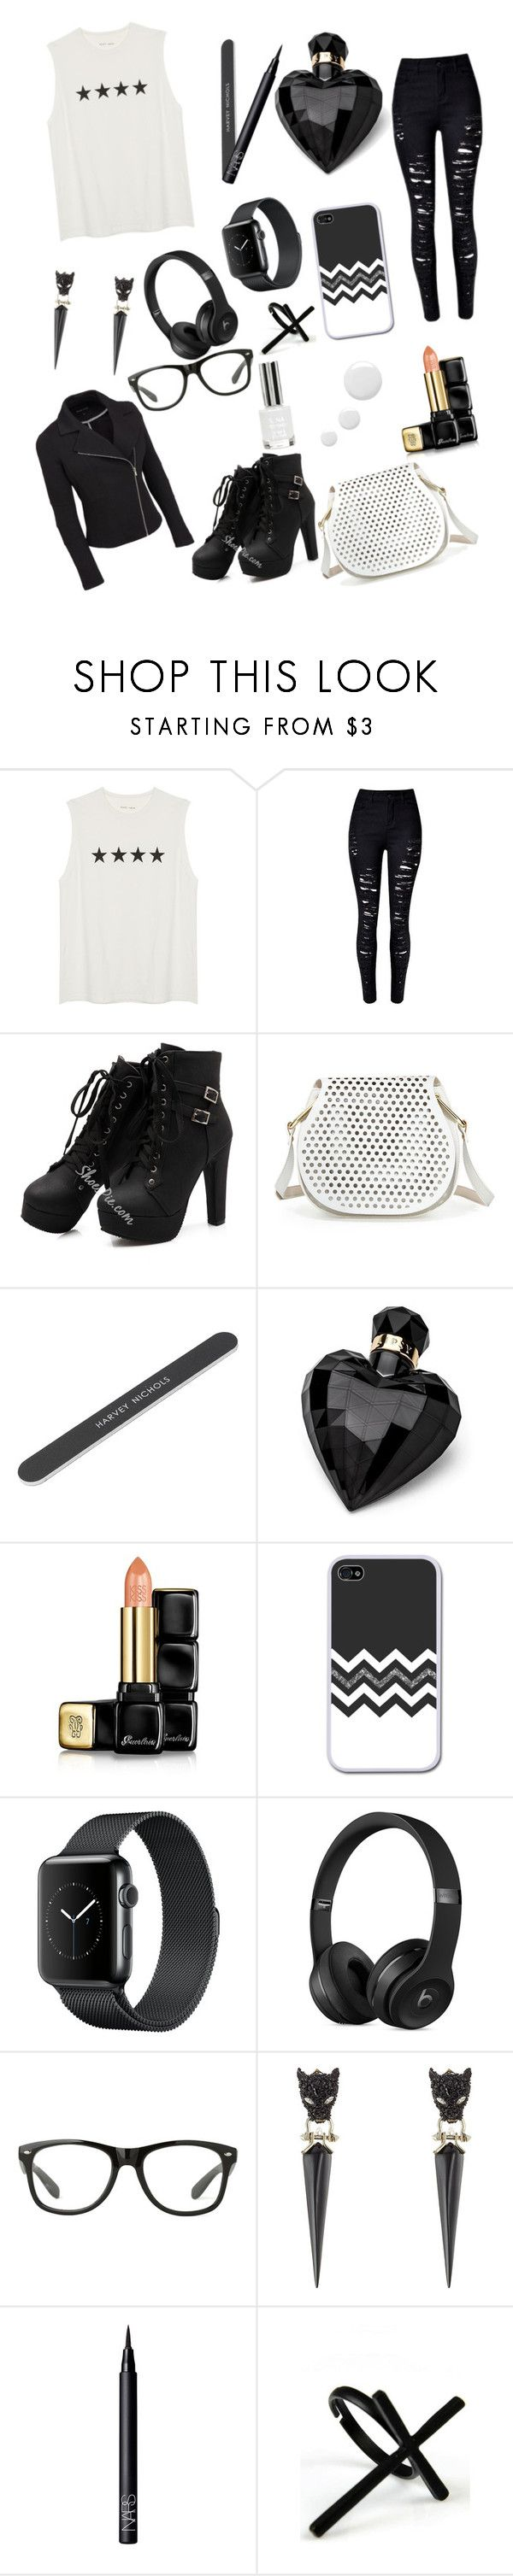 """""""Black and White"""" by kaykay42005 ❤ liked on Polyvore featuring Cynthia Rowley, Lipsy, Guerlain, Alexis Bittar, NARS Cosmetics, Emi Jewellery and plus size clothing"""